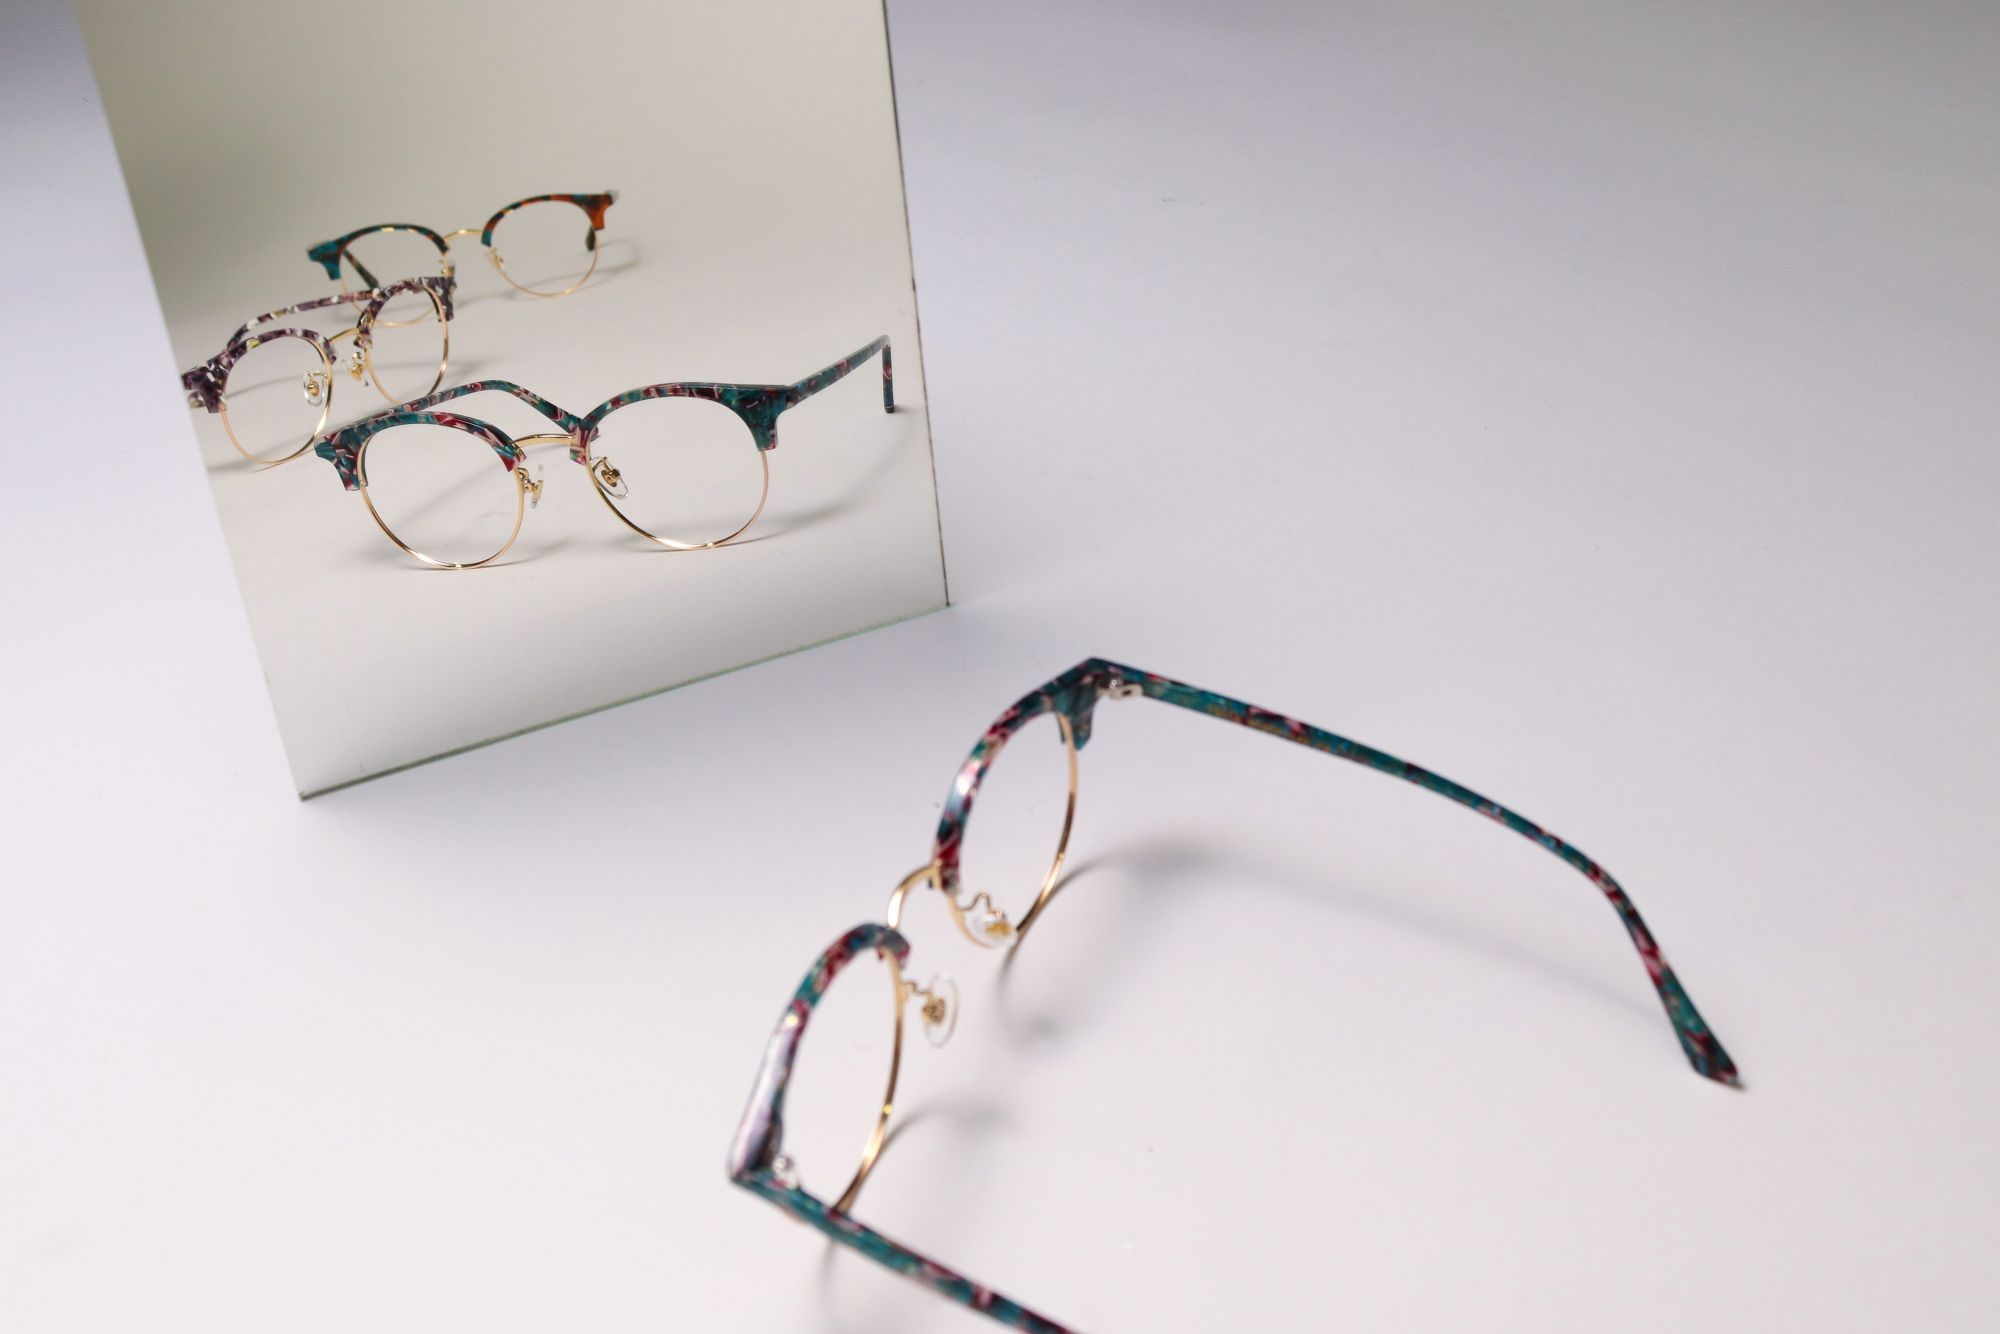 New Spika specs are a sight to behold